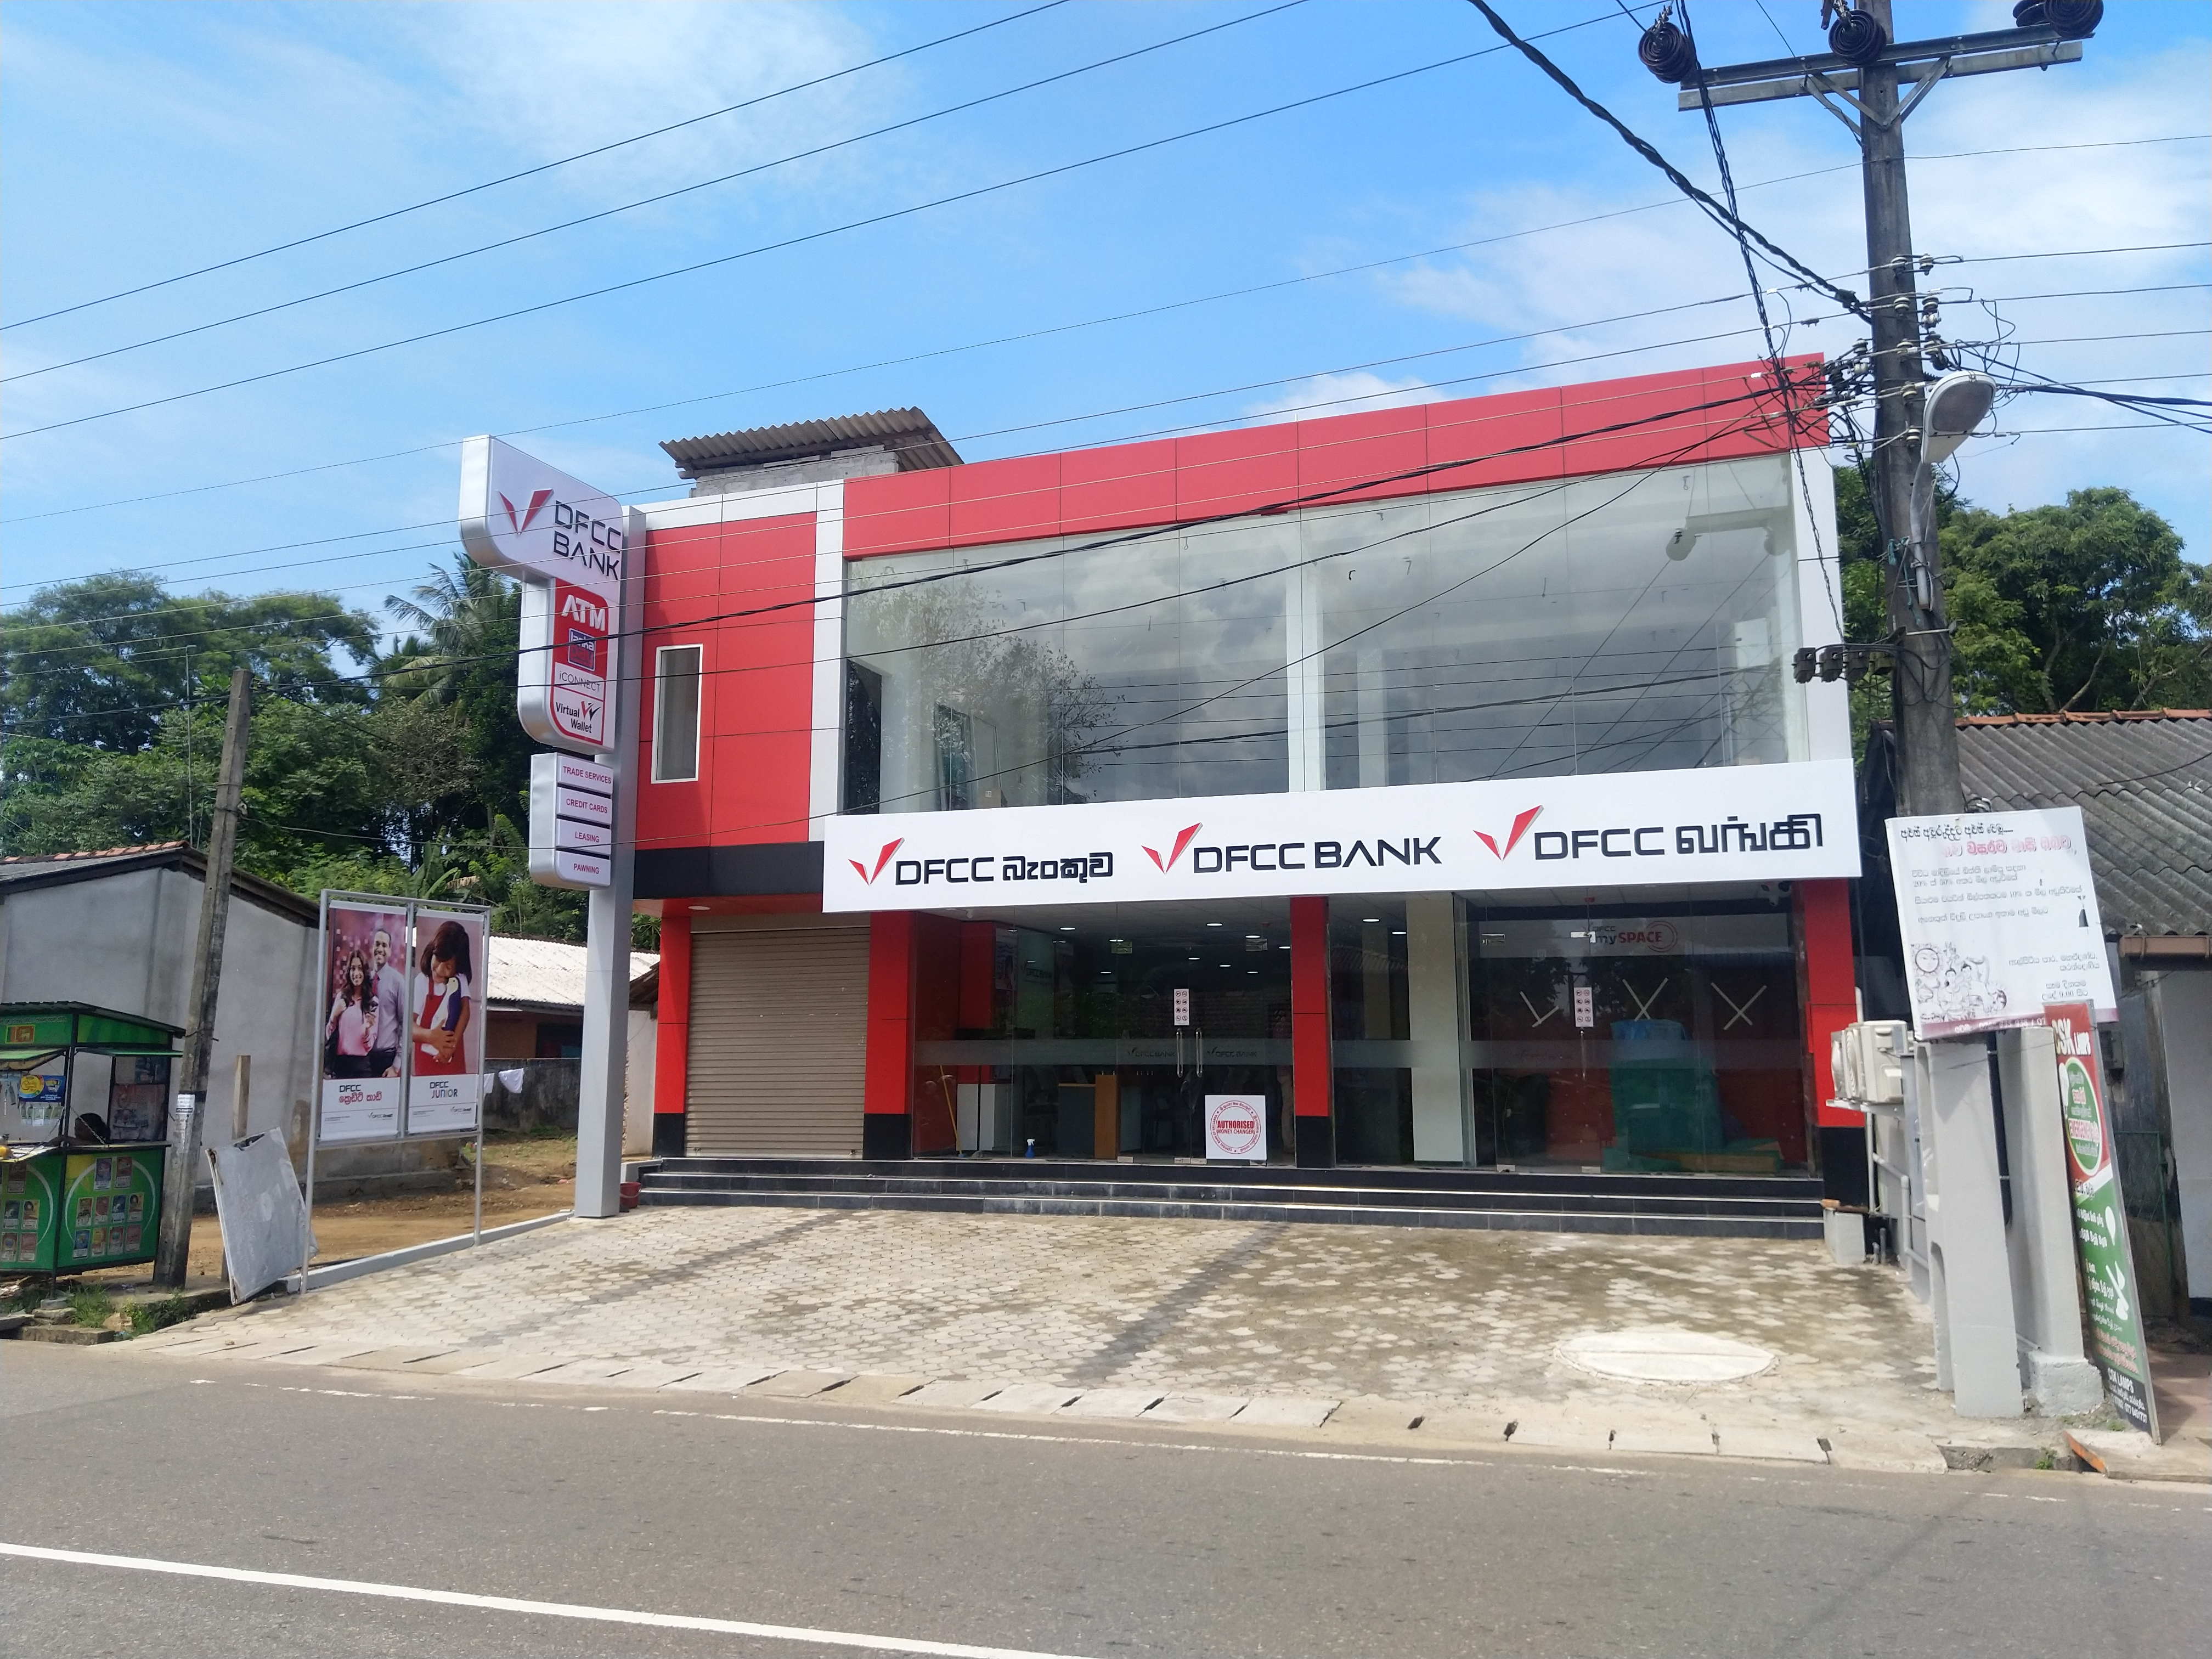 DFCC Bank opens 20 branches across Sri Lanka within 30 Days 4